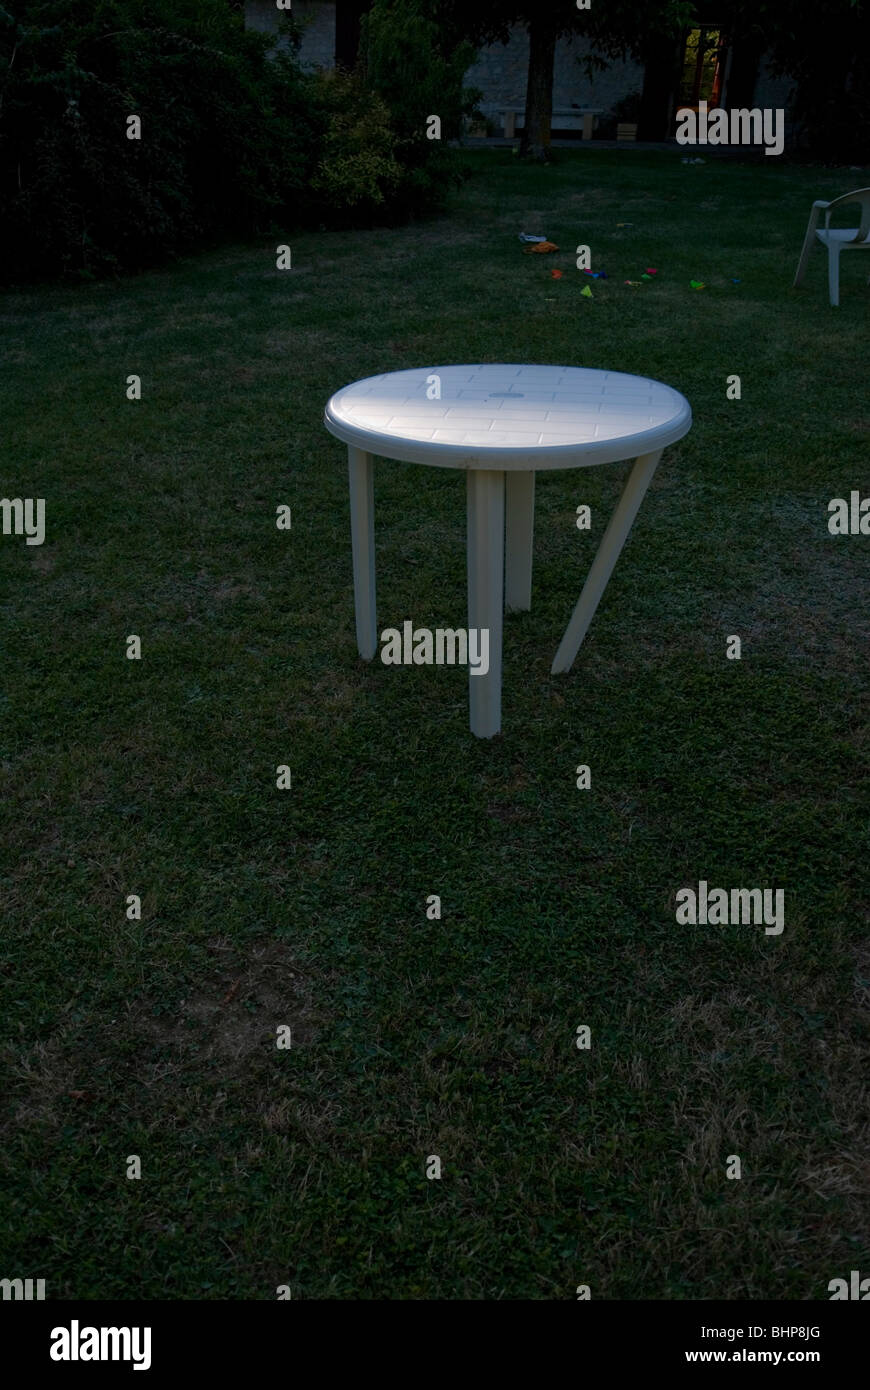 Tremendous White Plastic Garden Furniture Stock Photos White Plastic Gmtry Best Dining Table And Chair Ideas Images Gmtryco